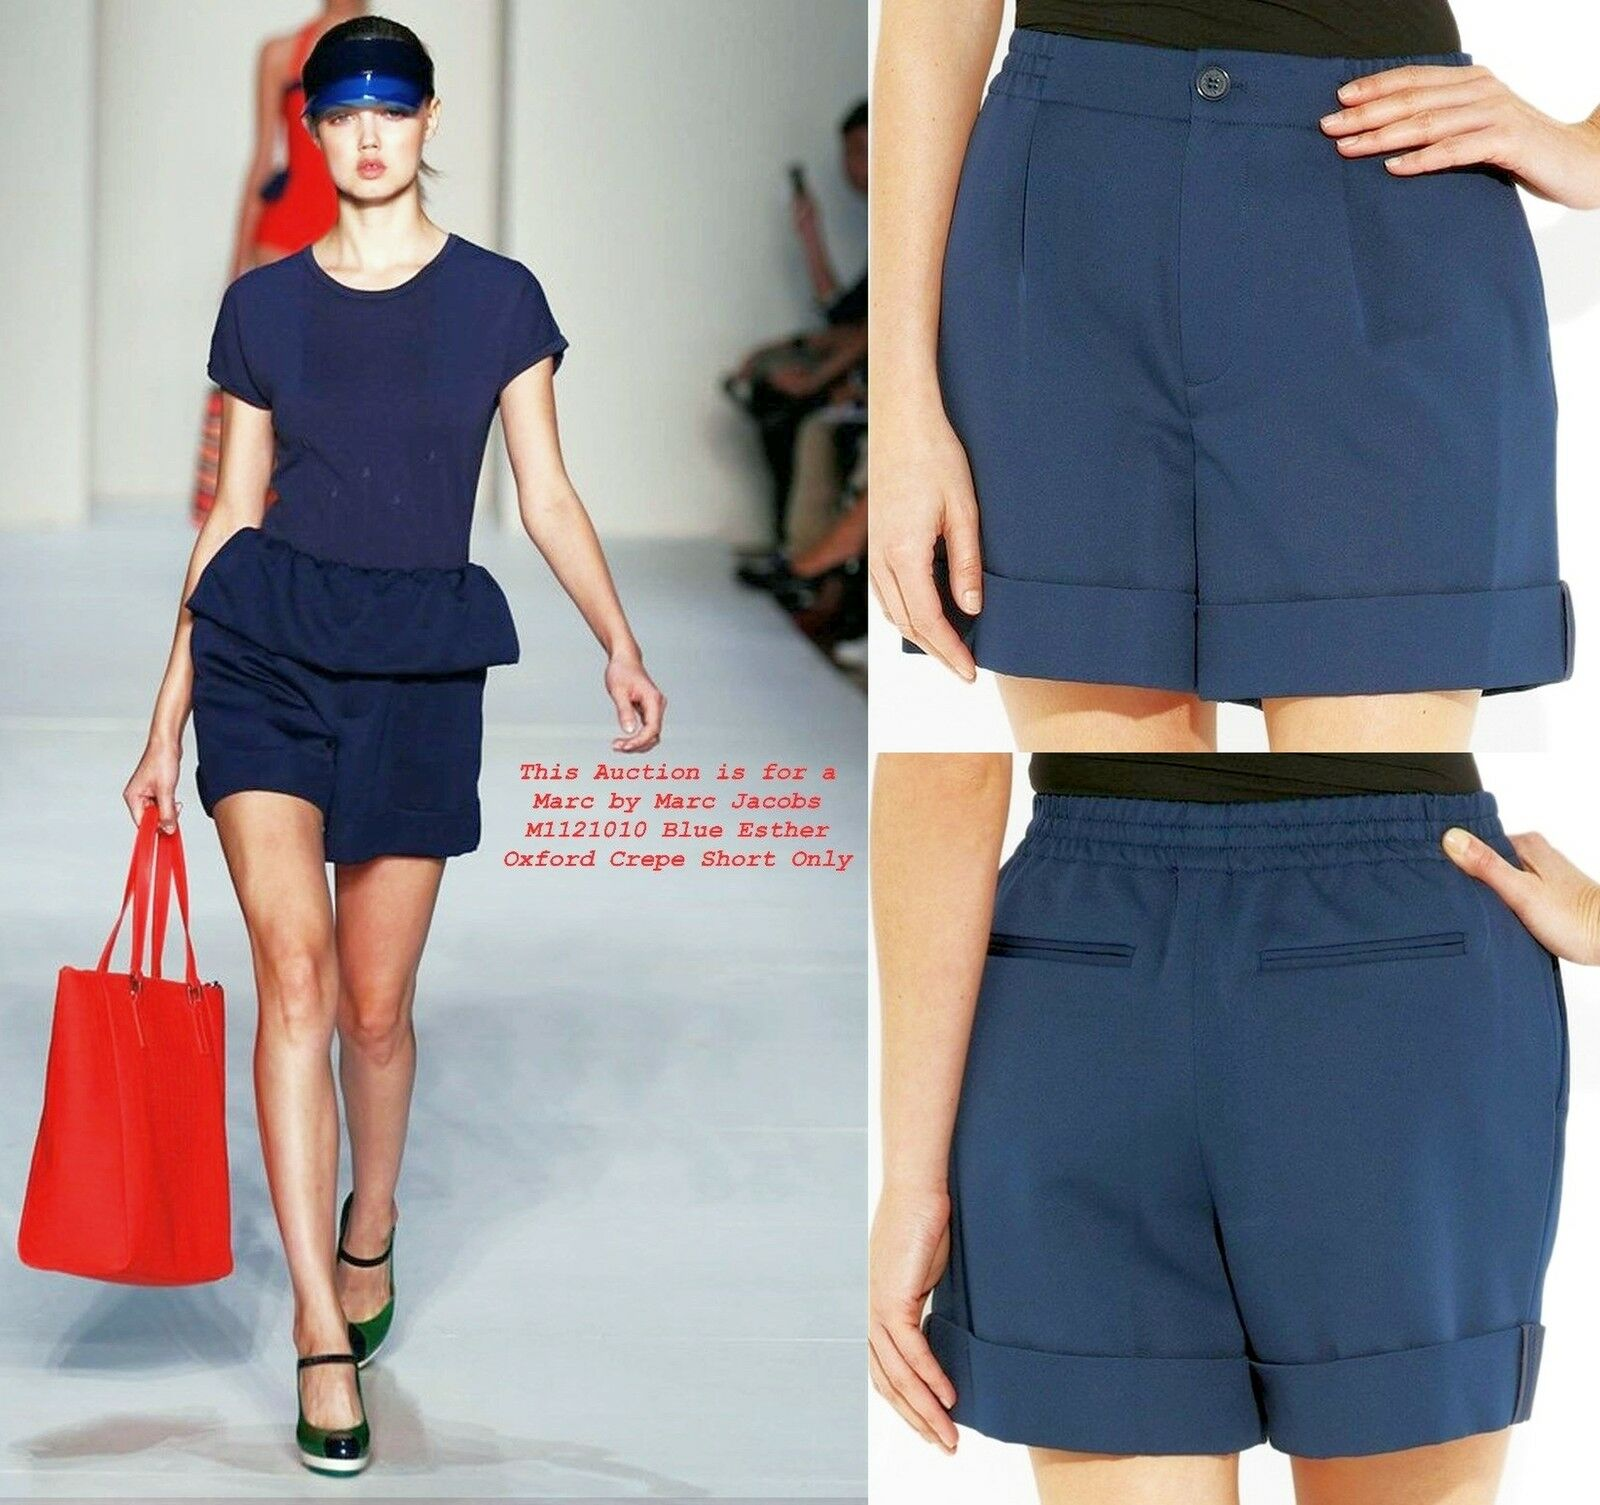 228 Marc By Marc Jacobs sz 0 (W 27  - 29 ) Navy Esther Oxford Crepe Shorts